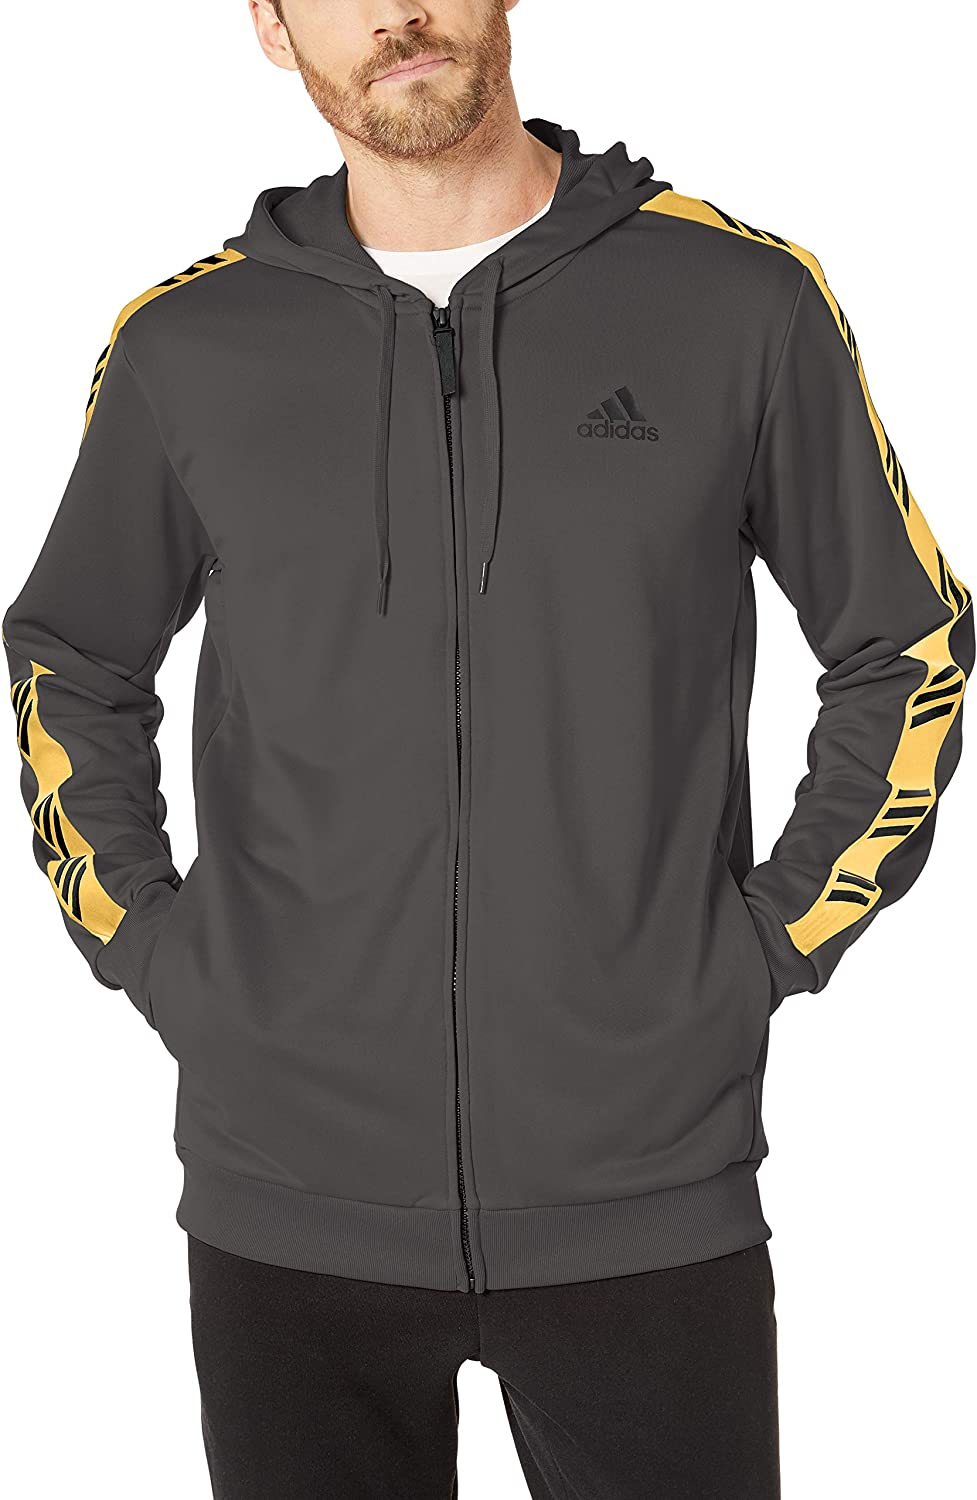 adidas 08496 Pro Madness Hoodie Capucha, Gris, Extra-Large para Hombre